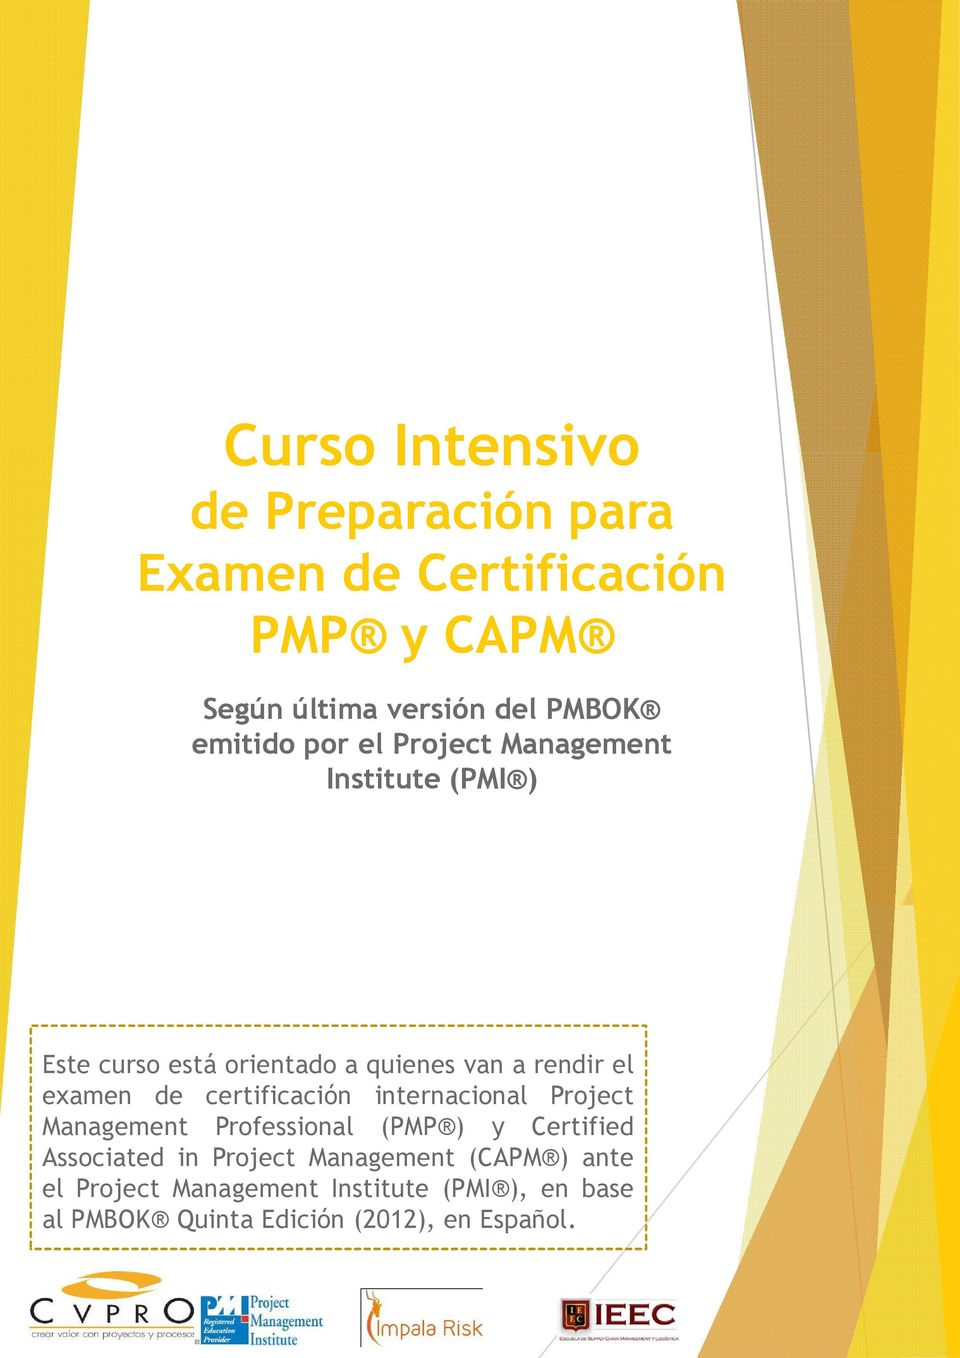 examen de certificación internacional Project Management Professional (PMP ) y Certified Associated in